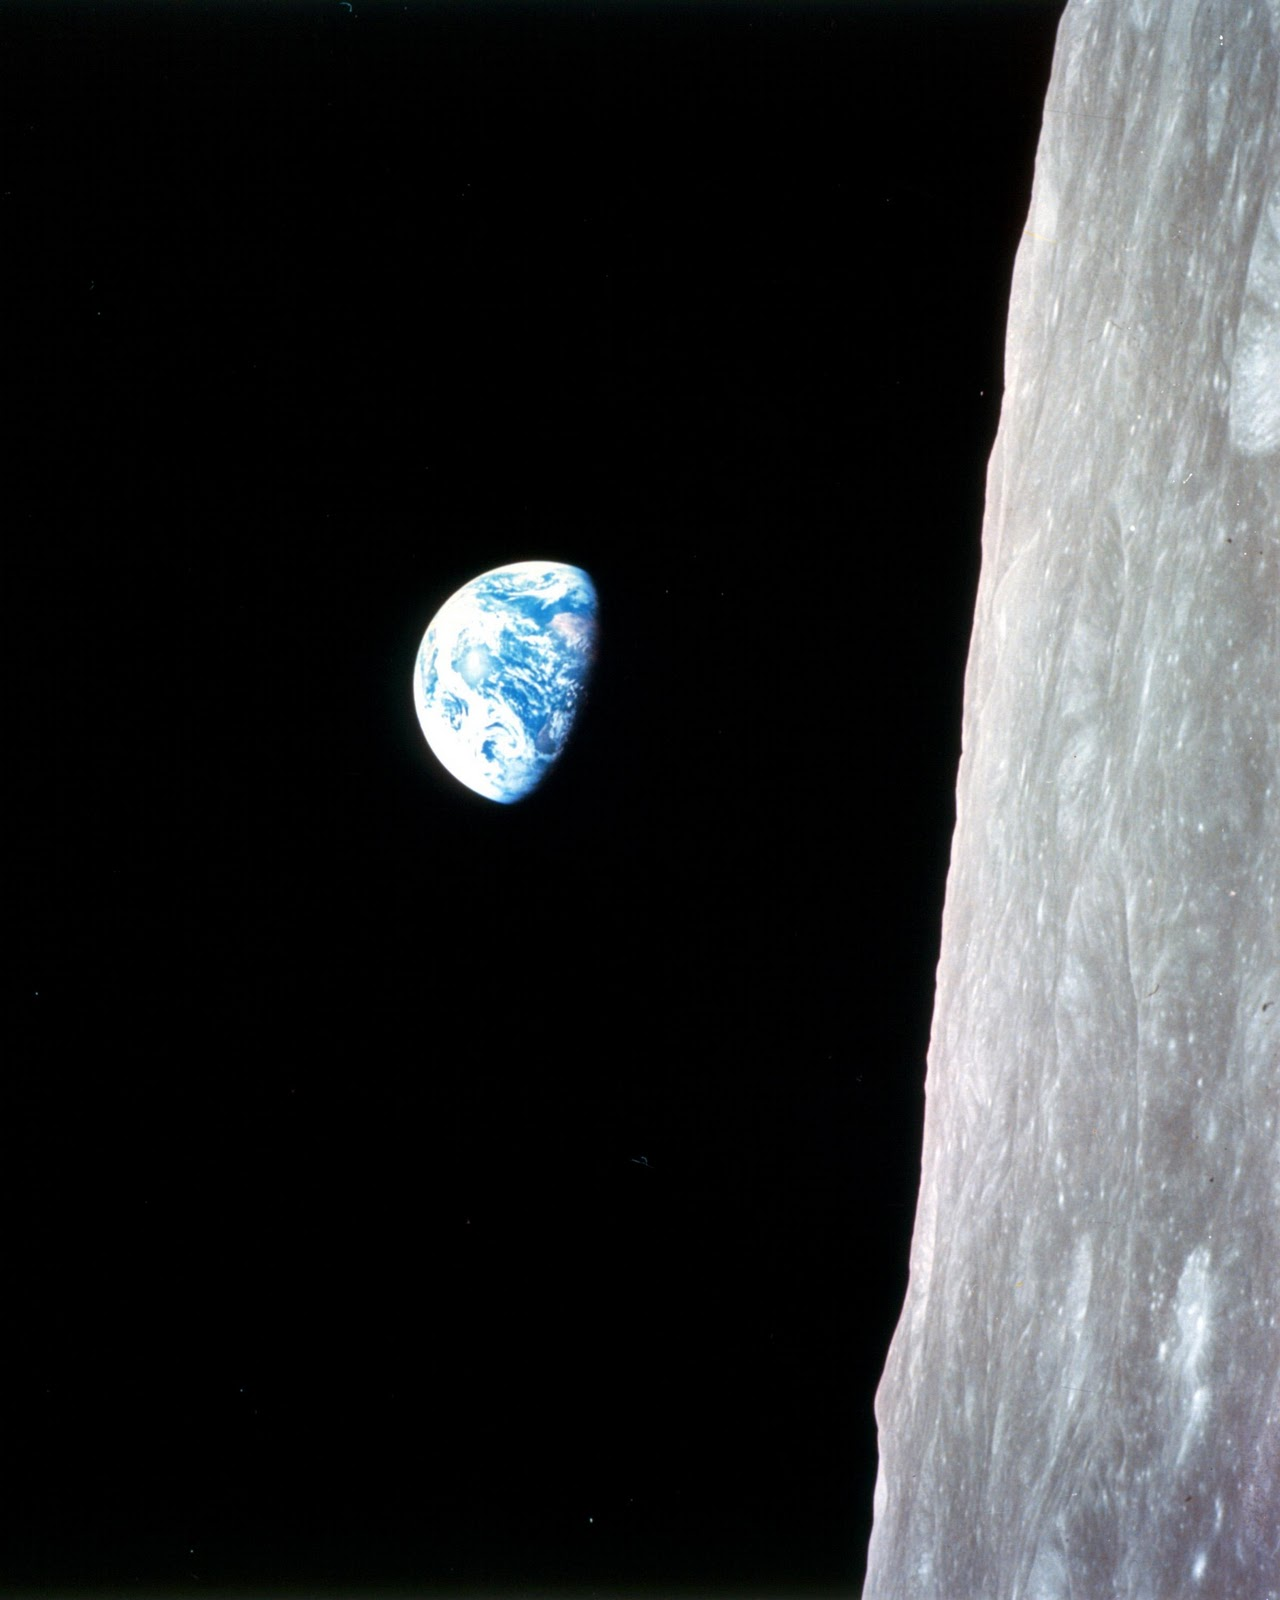 earthrise from moon apollo - photo #3